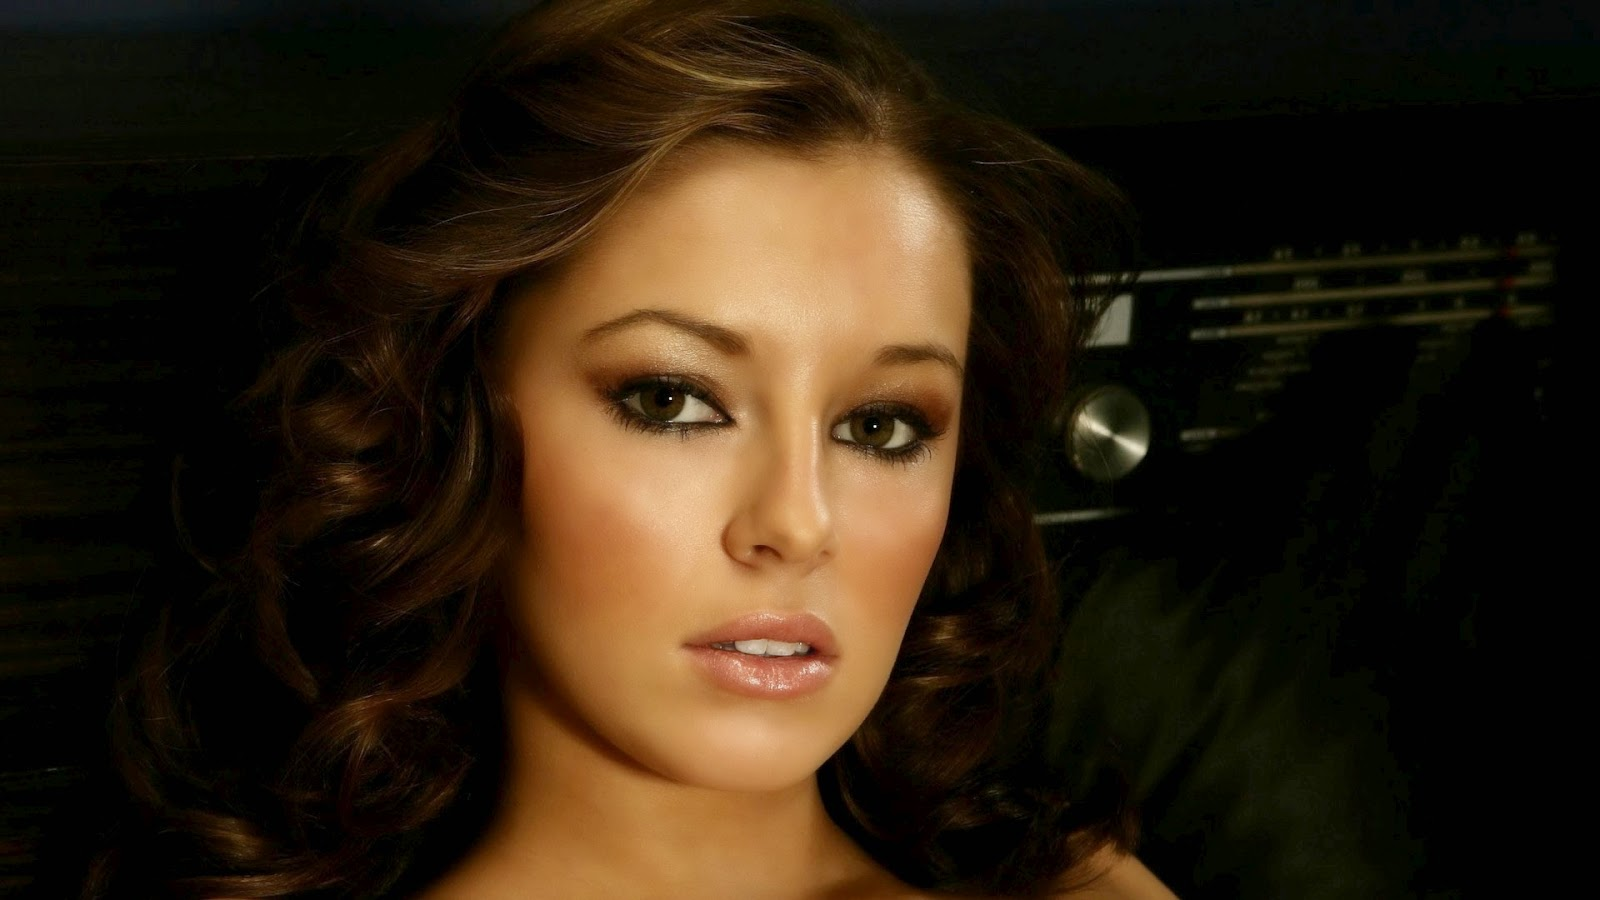 keeley hazell downloads backgrounds - photo #11